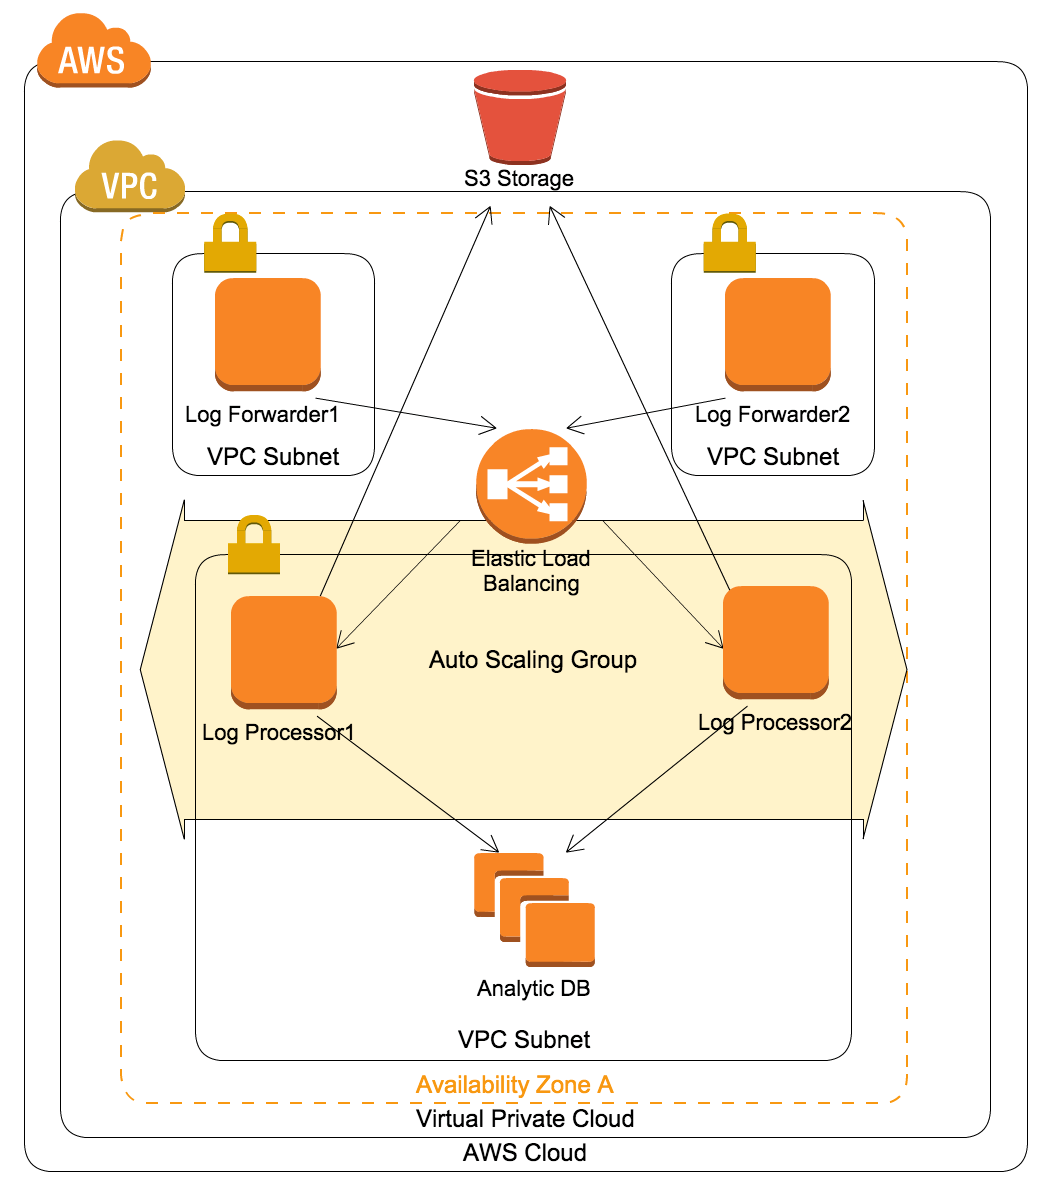 Figure 1. QNAP Analytics Platform Architecture on AWS.